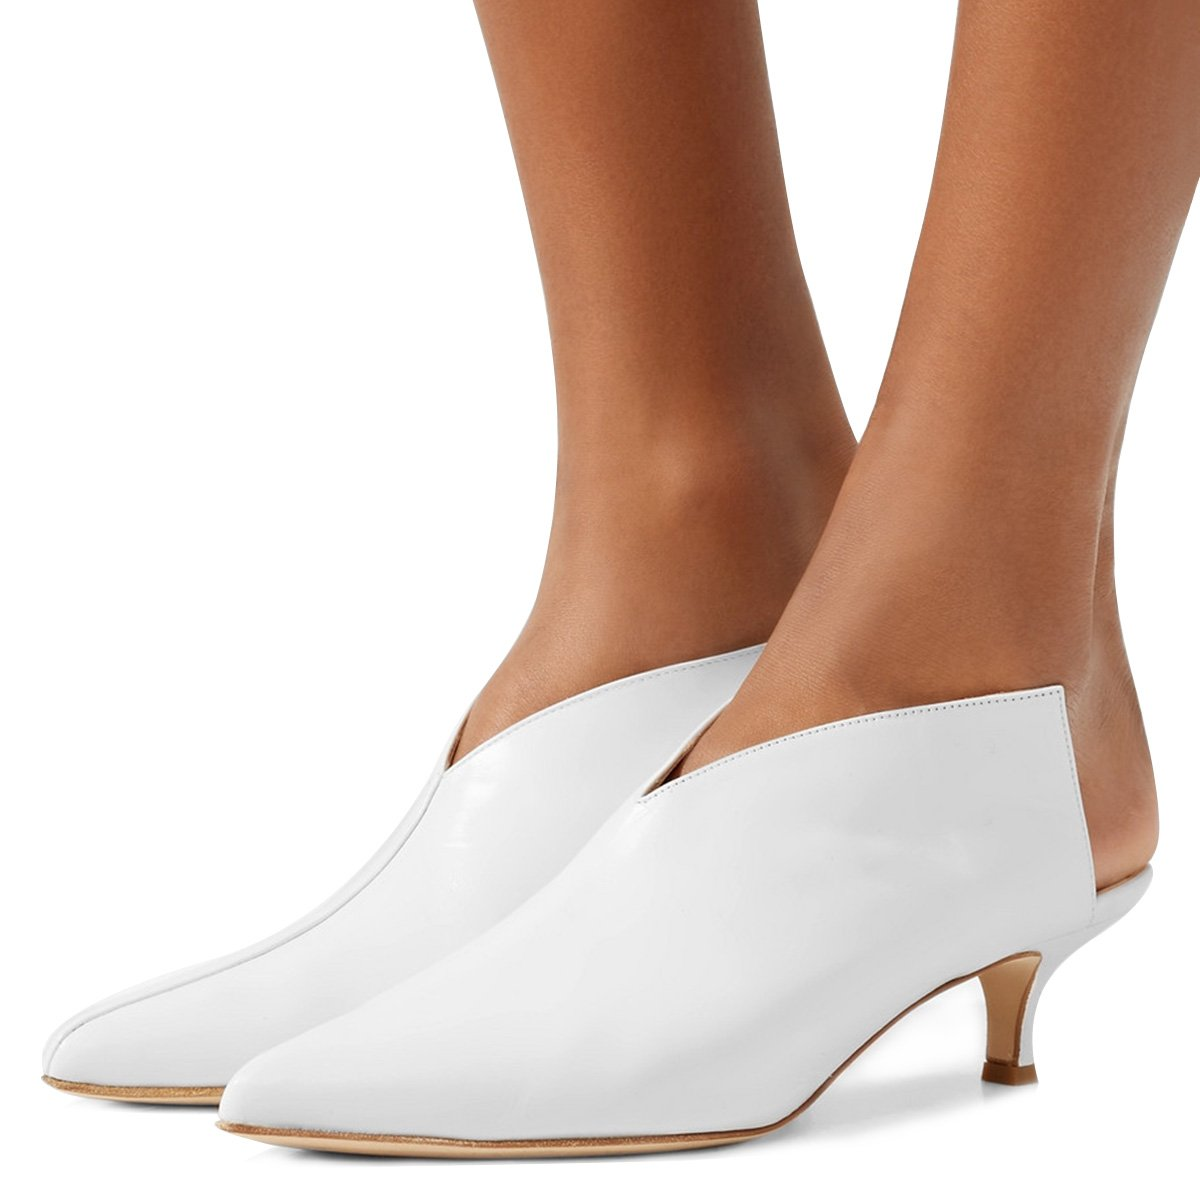 XYD Women Pointed Toe Kitten Mules Low Heels Slip On Pumps Slide Sandals Clog Shoes Ivory 10